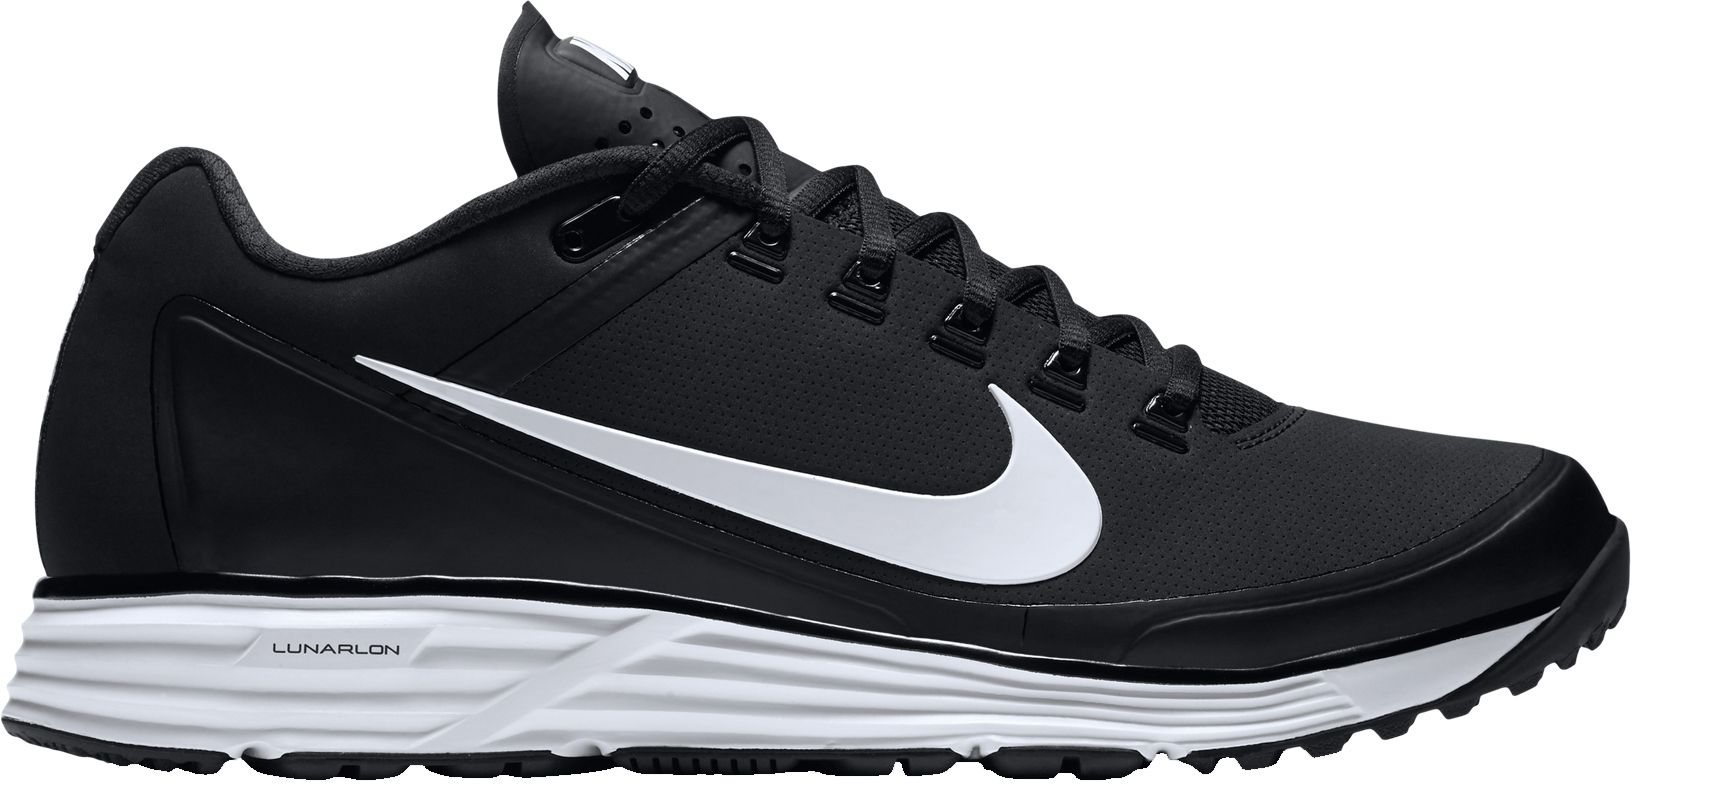 Cheap Baseball Training Shoes